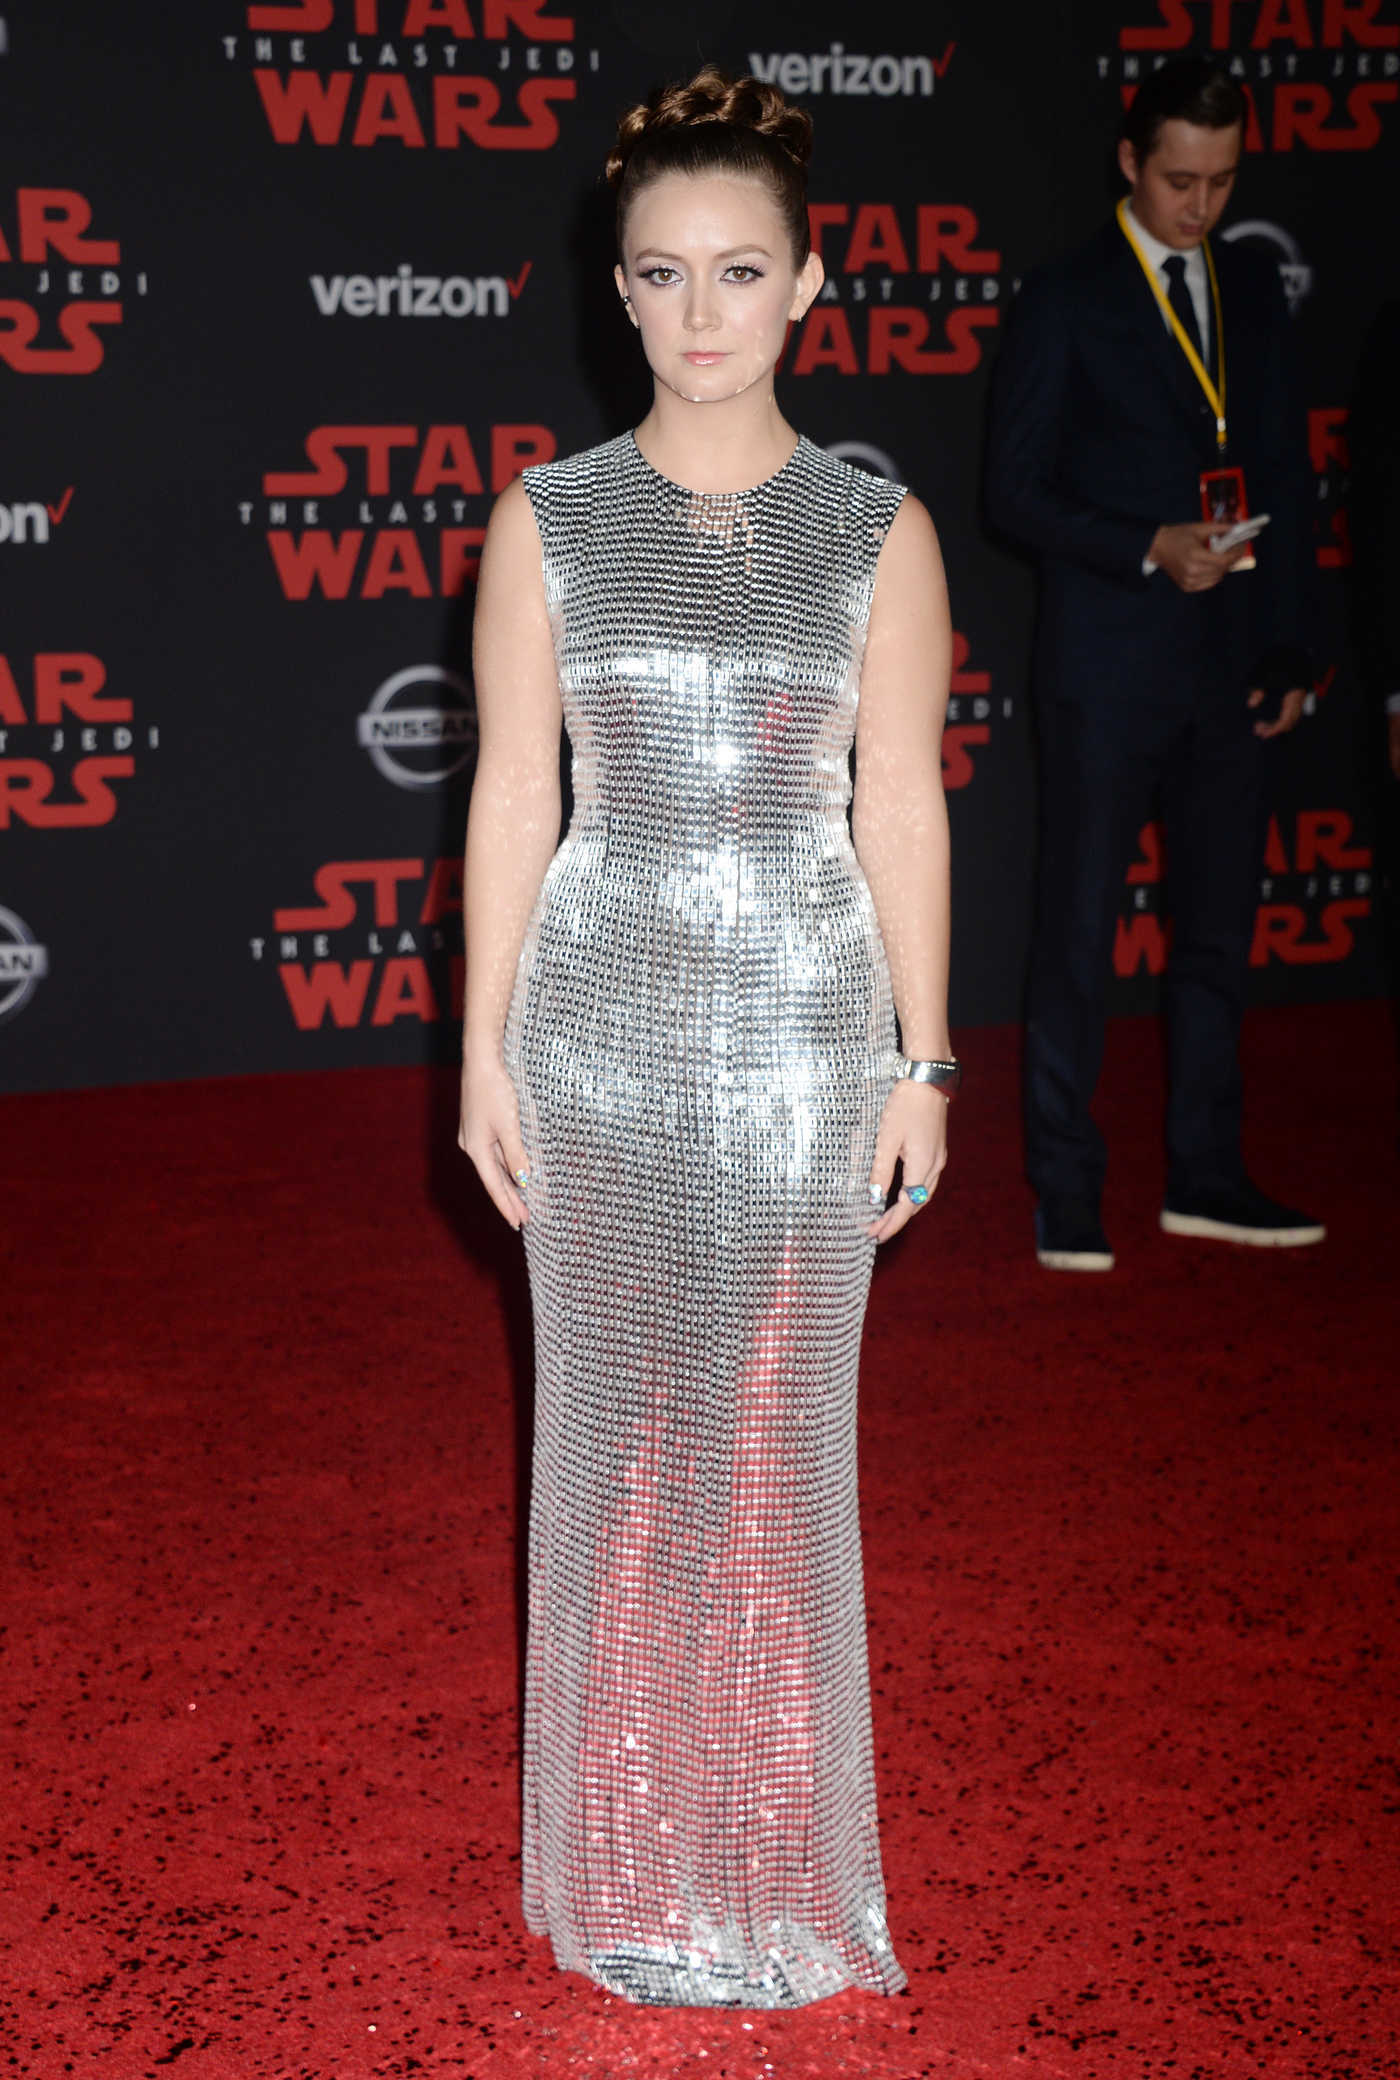 Billie Lourd at the Star Wars: The Last Jedi Premiere in Los Angeles 12/09/2017